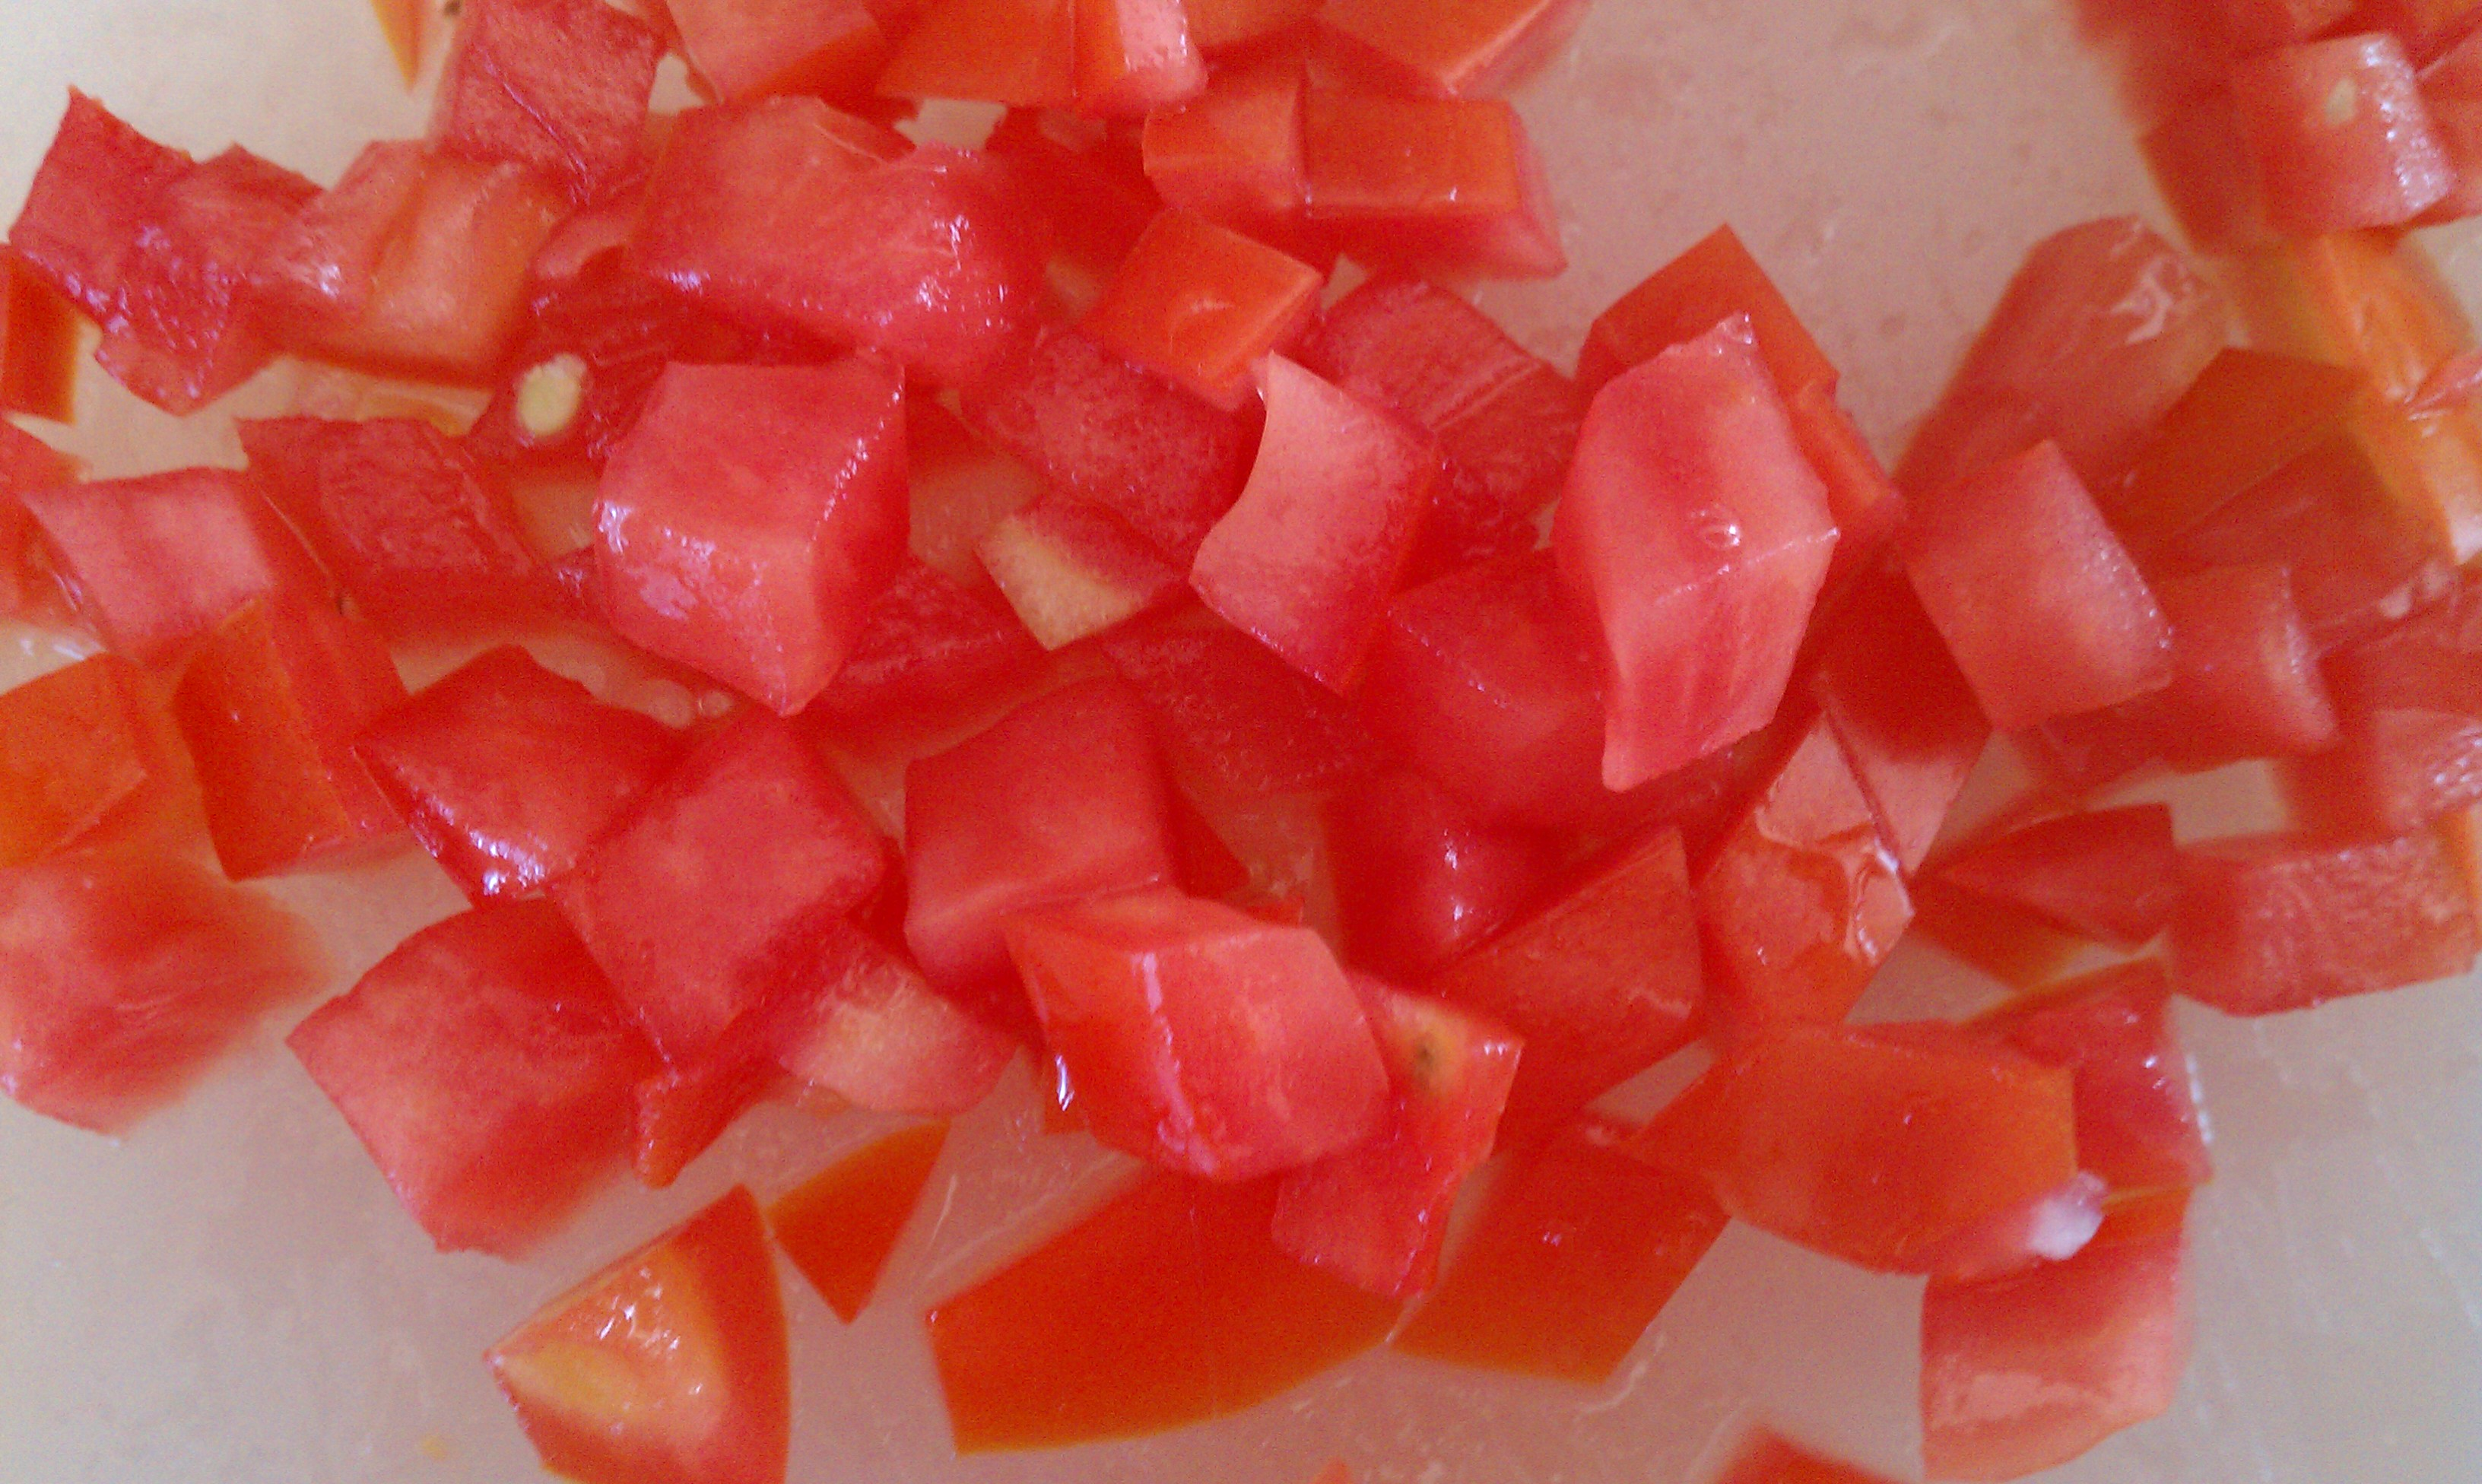 Tomatoes clipart diced tomatoes. Guacamole wikijan cooks toss